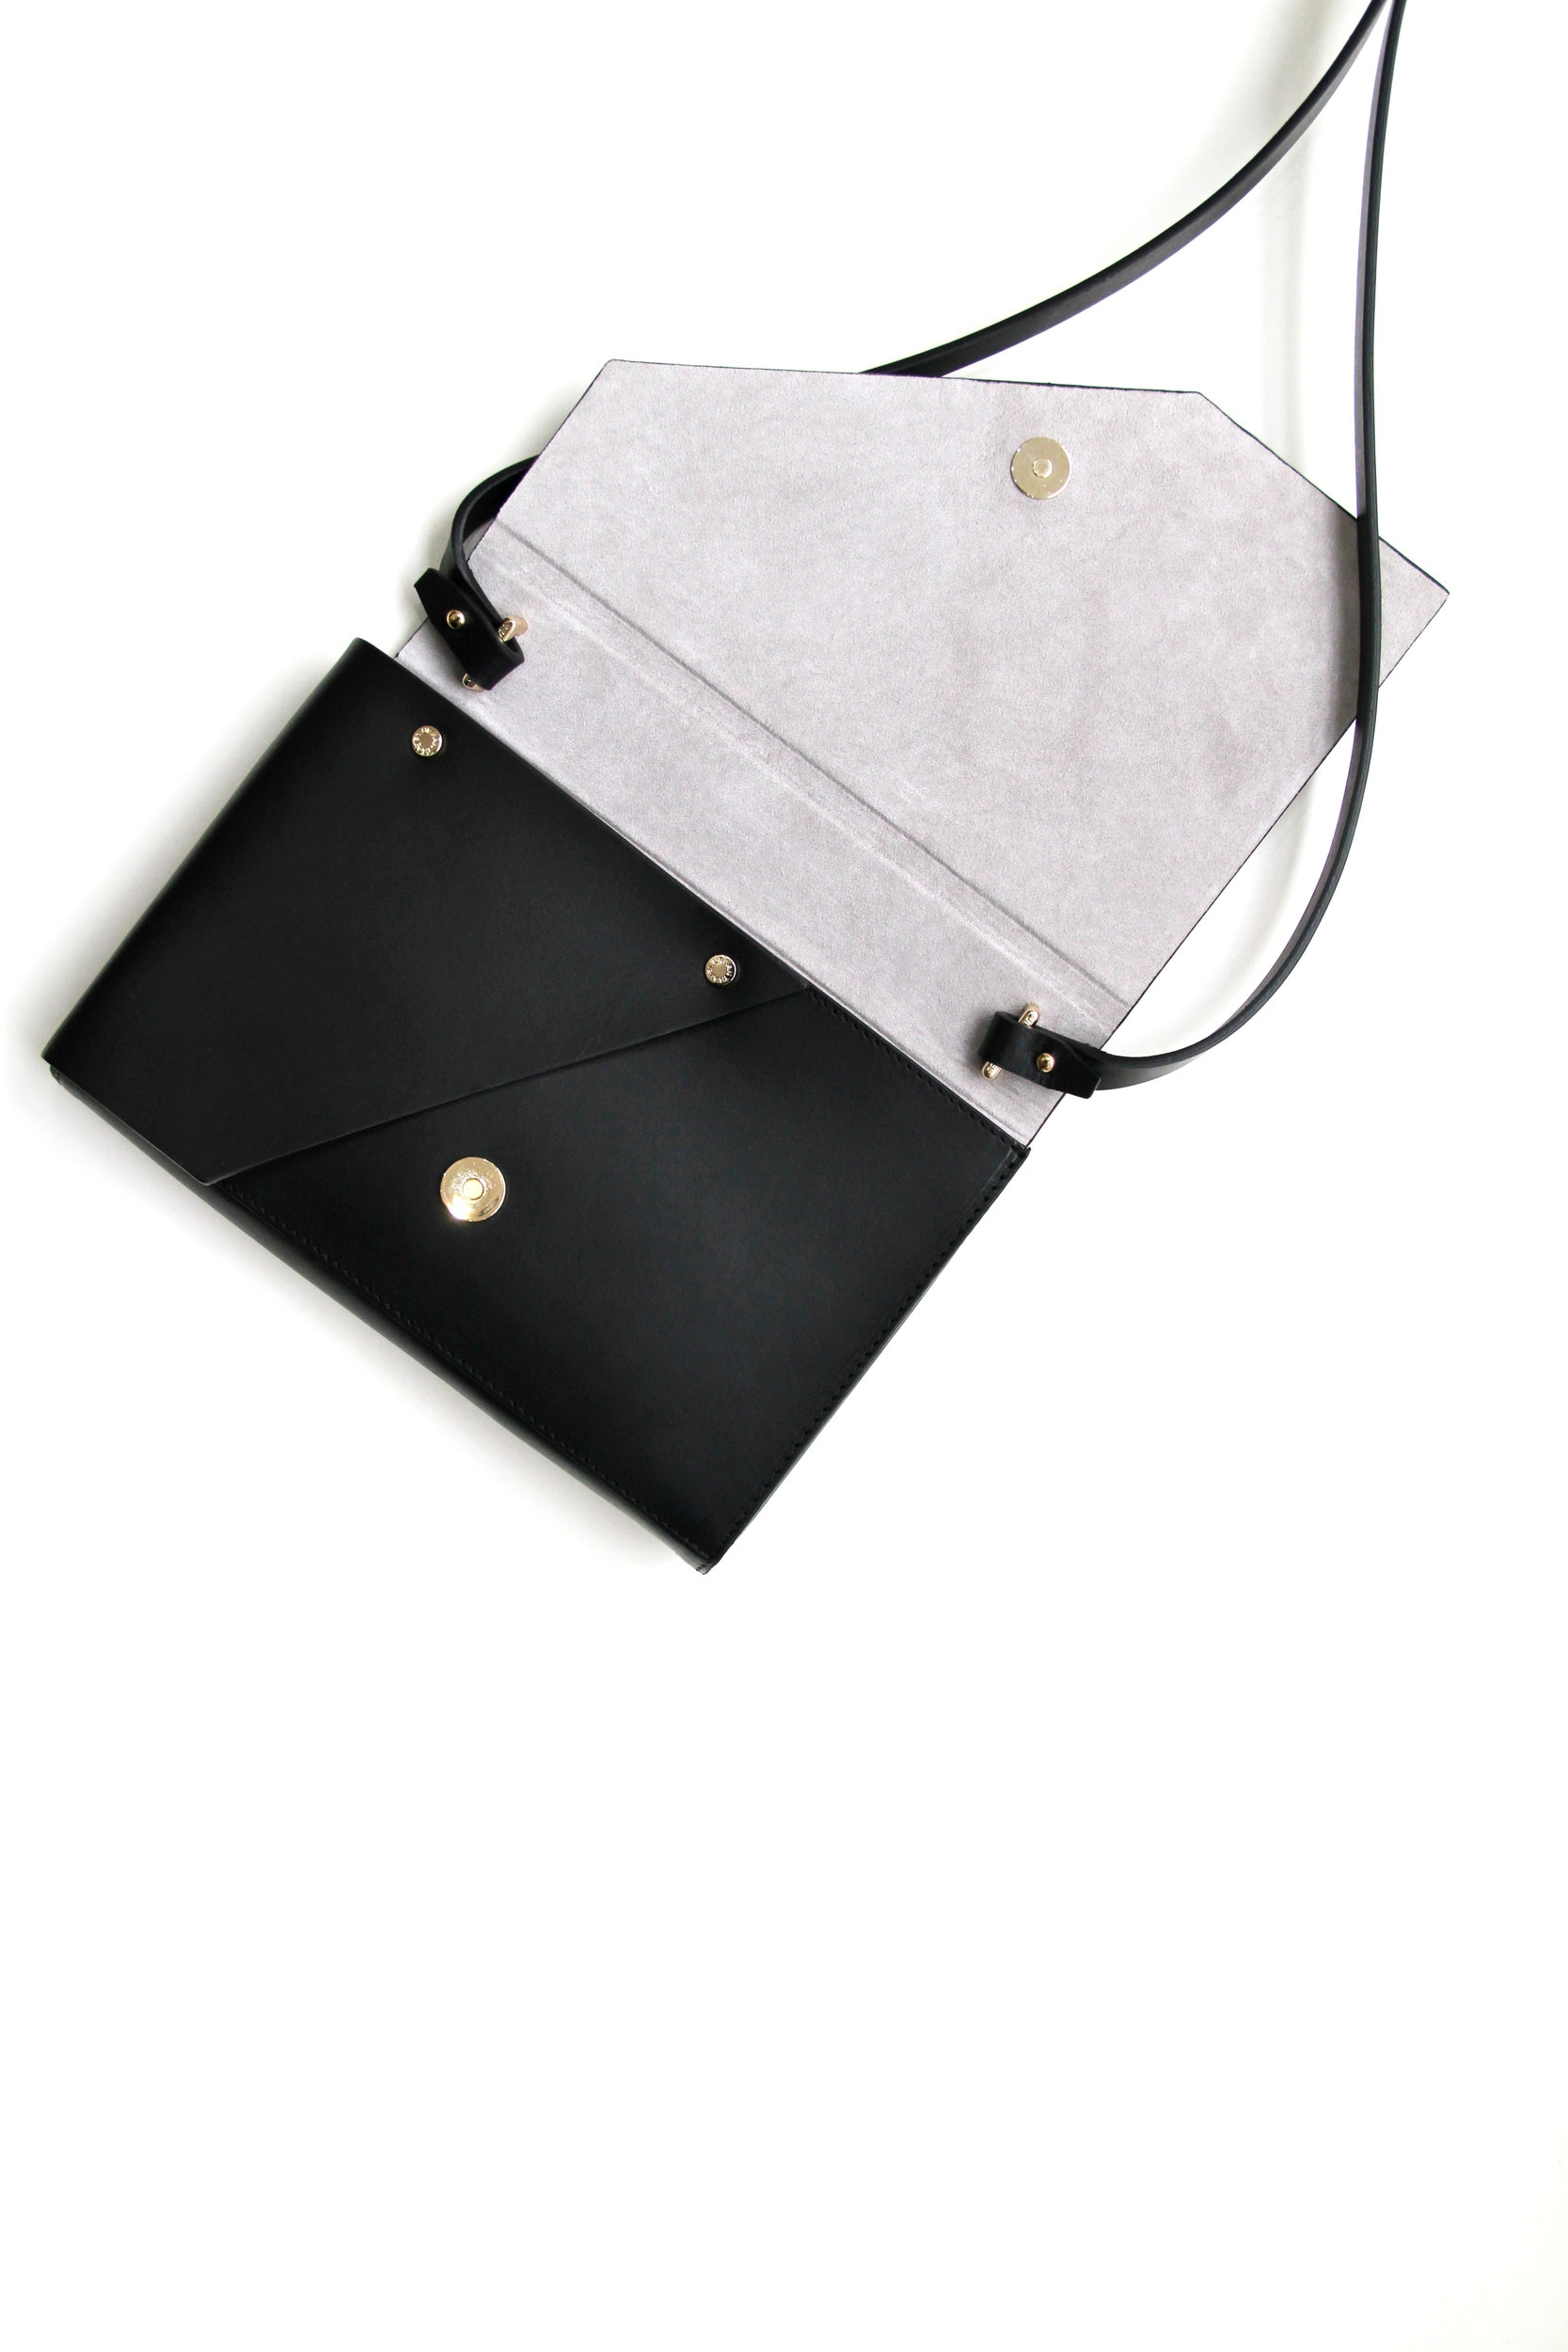 Evo Leather Clutch Black Open View -Urban Travel x Isabel Wong.jpg